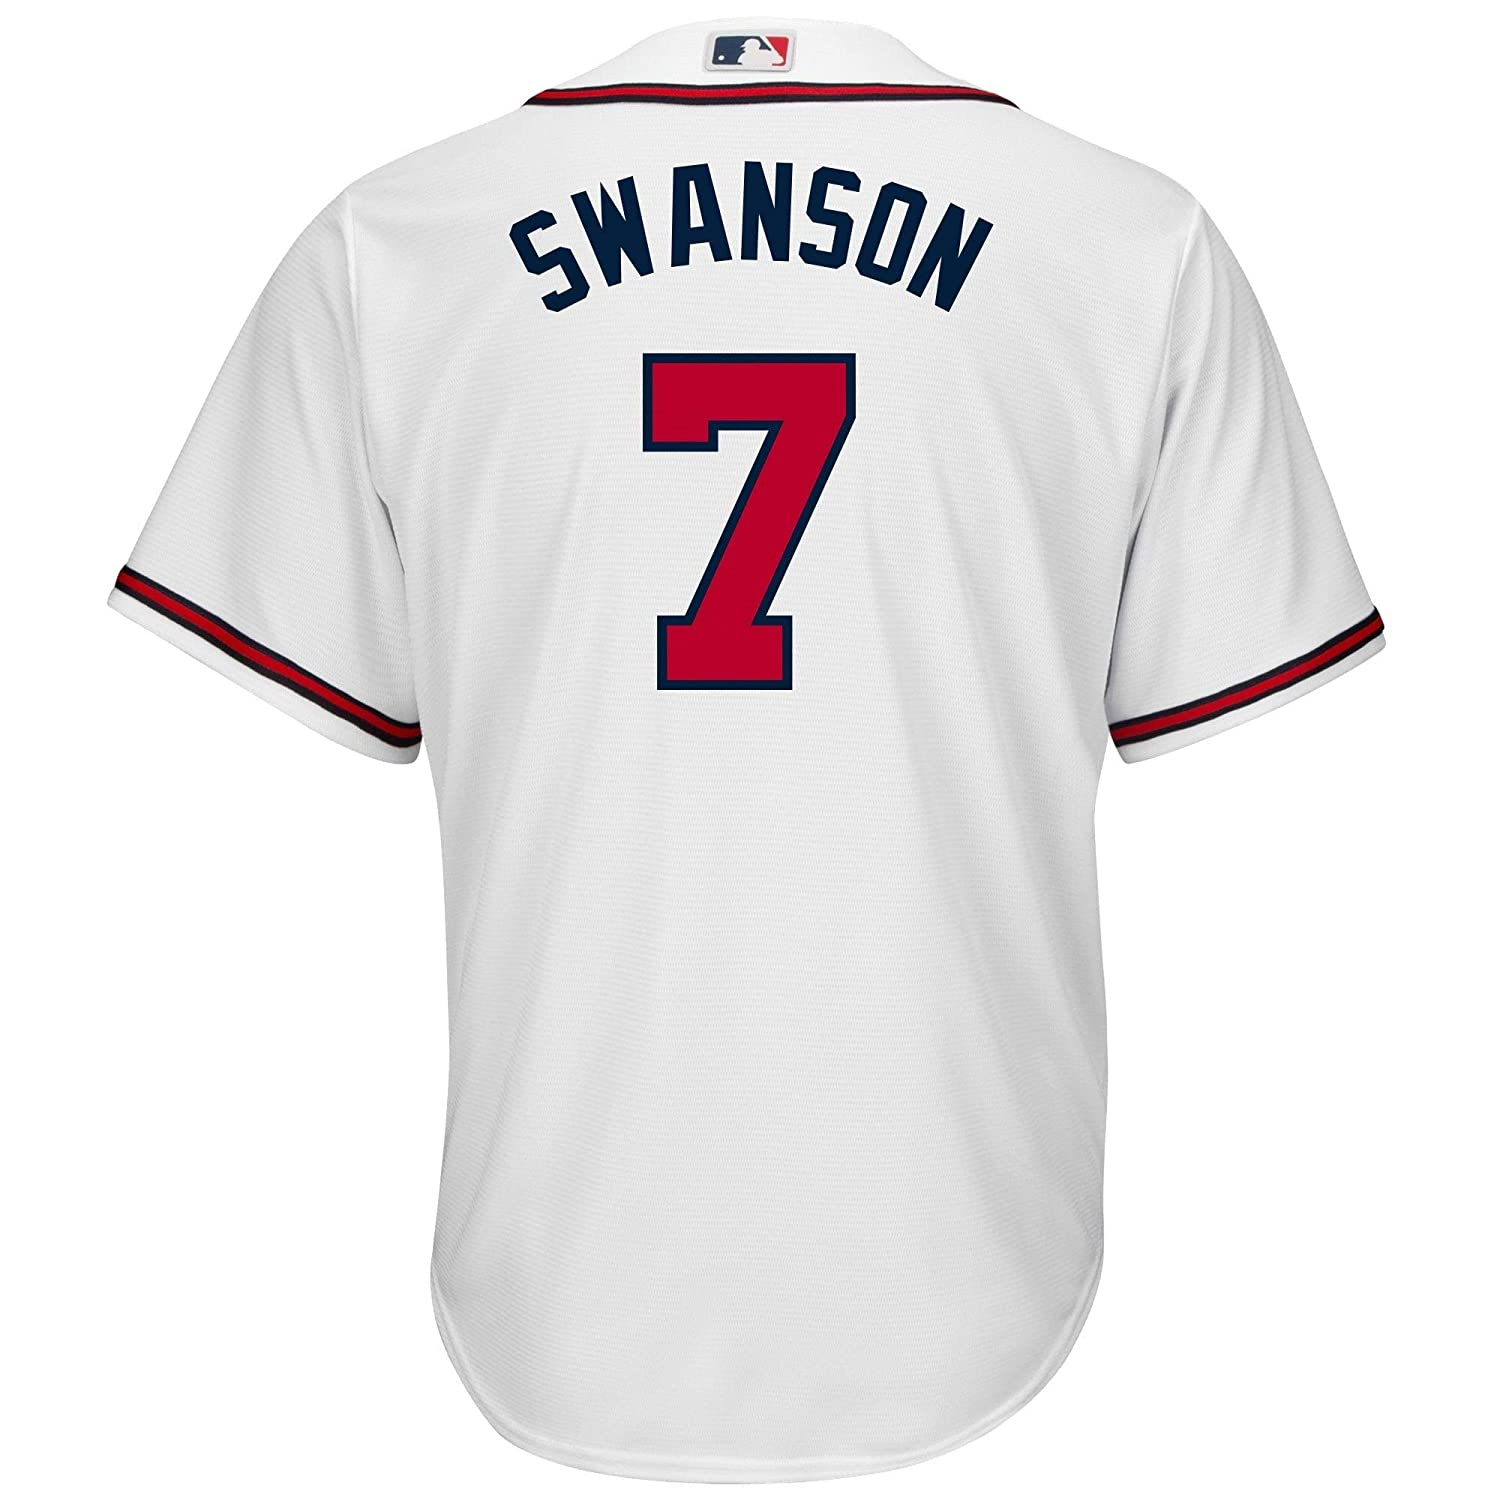 super popular 38563 973a9 Amazon.com: Dansby Swanson Atlanta Braves White Youth Cool ...